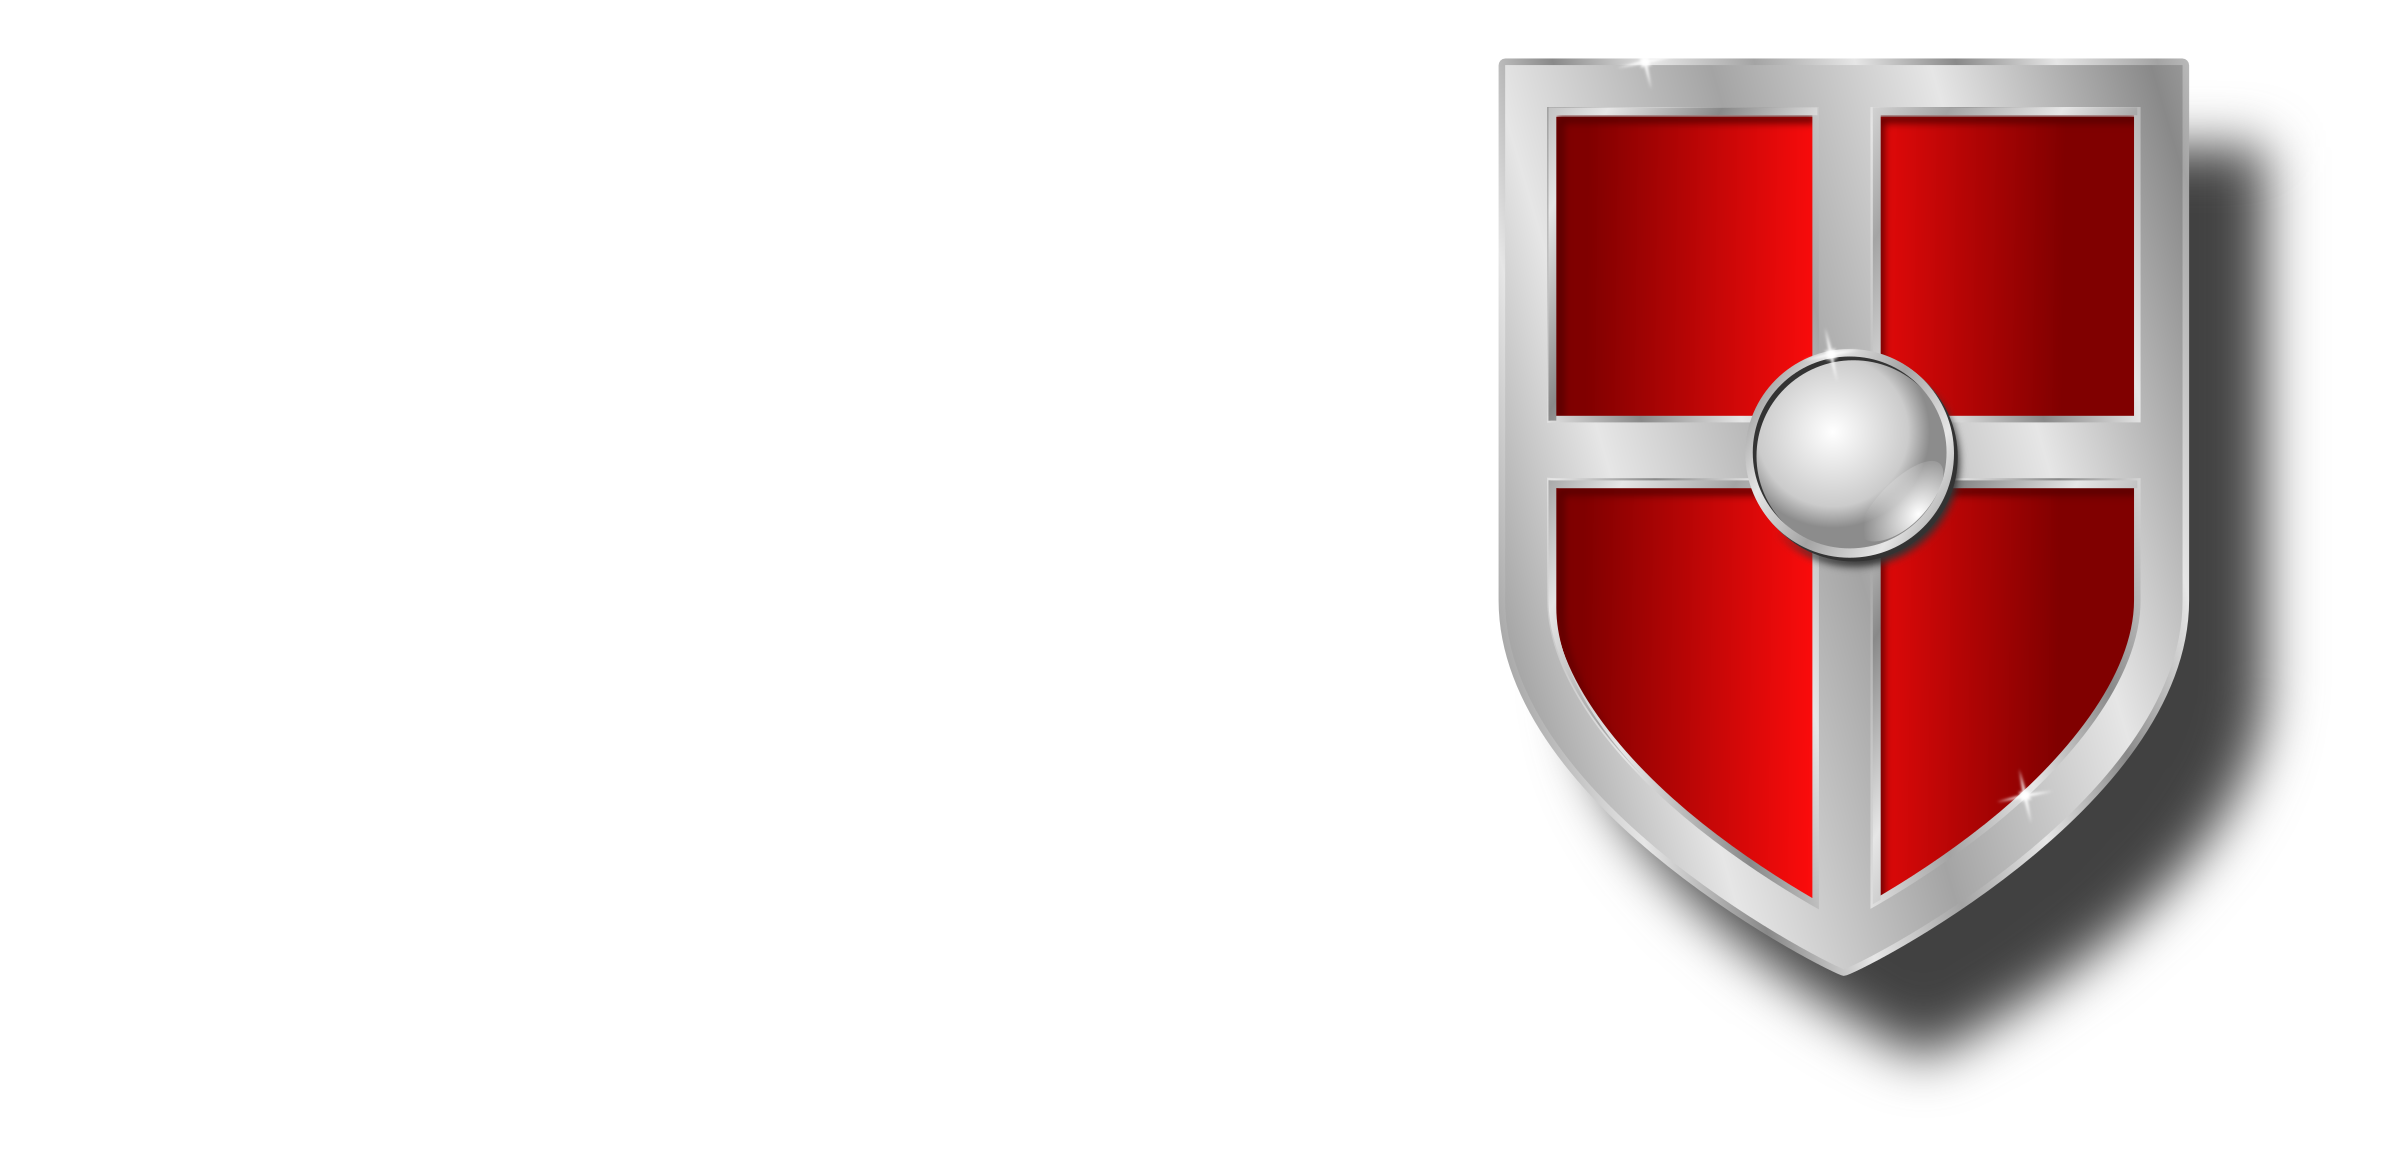 Clipart shield weapon. Big image png